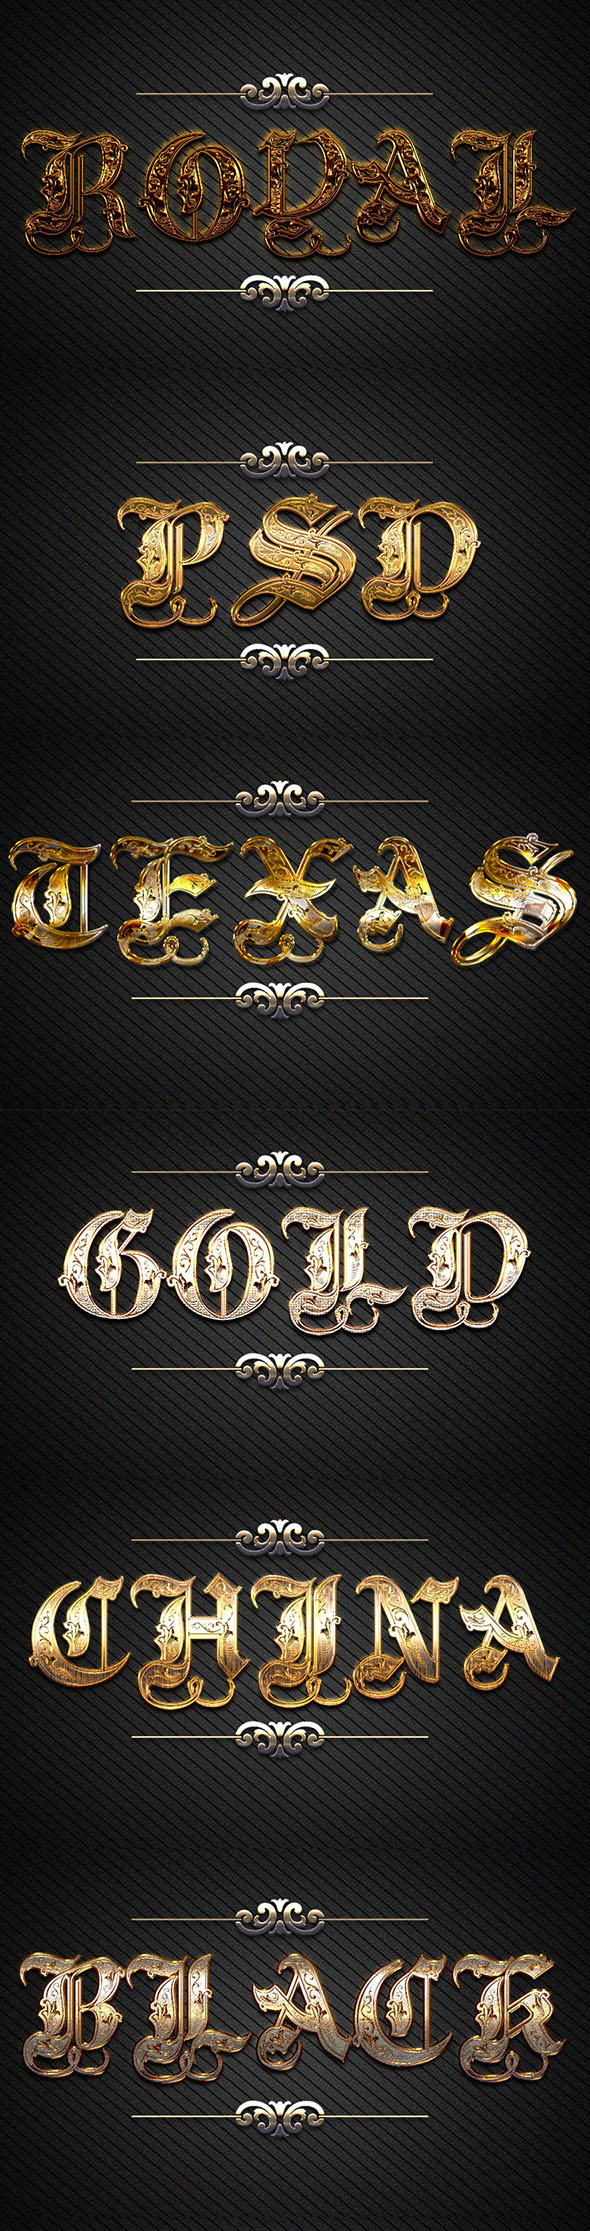 GraphicRiver 10 3D Gold Text Styles D 47 21143260